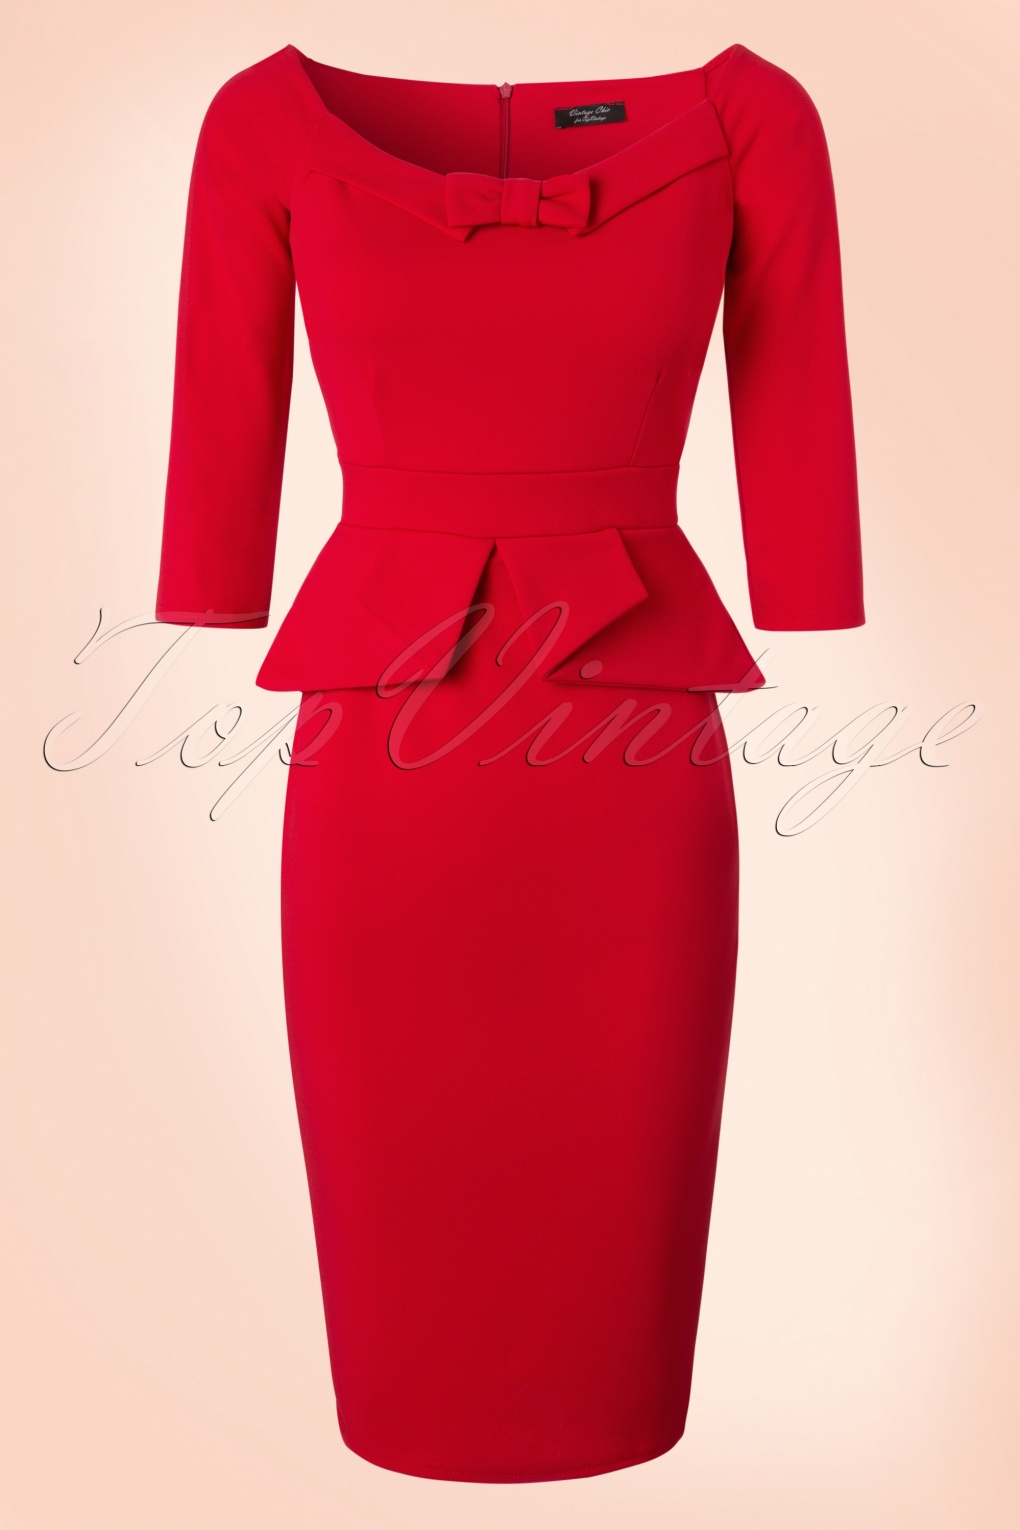 Vintage Inspired Cocktail Dresses, Party Dresses 50s Paloma Peplum Pencil Dress in Lipstick Red £49.58 AT vintagedancer.com